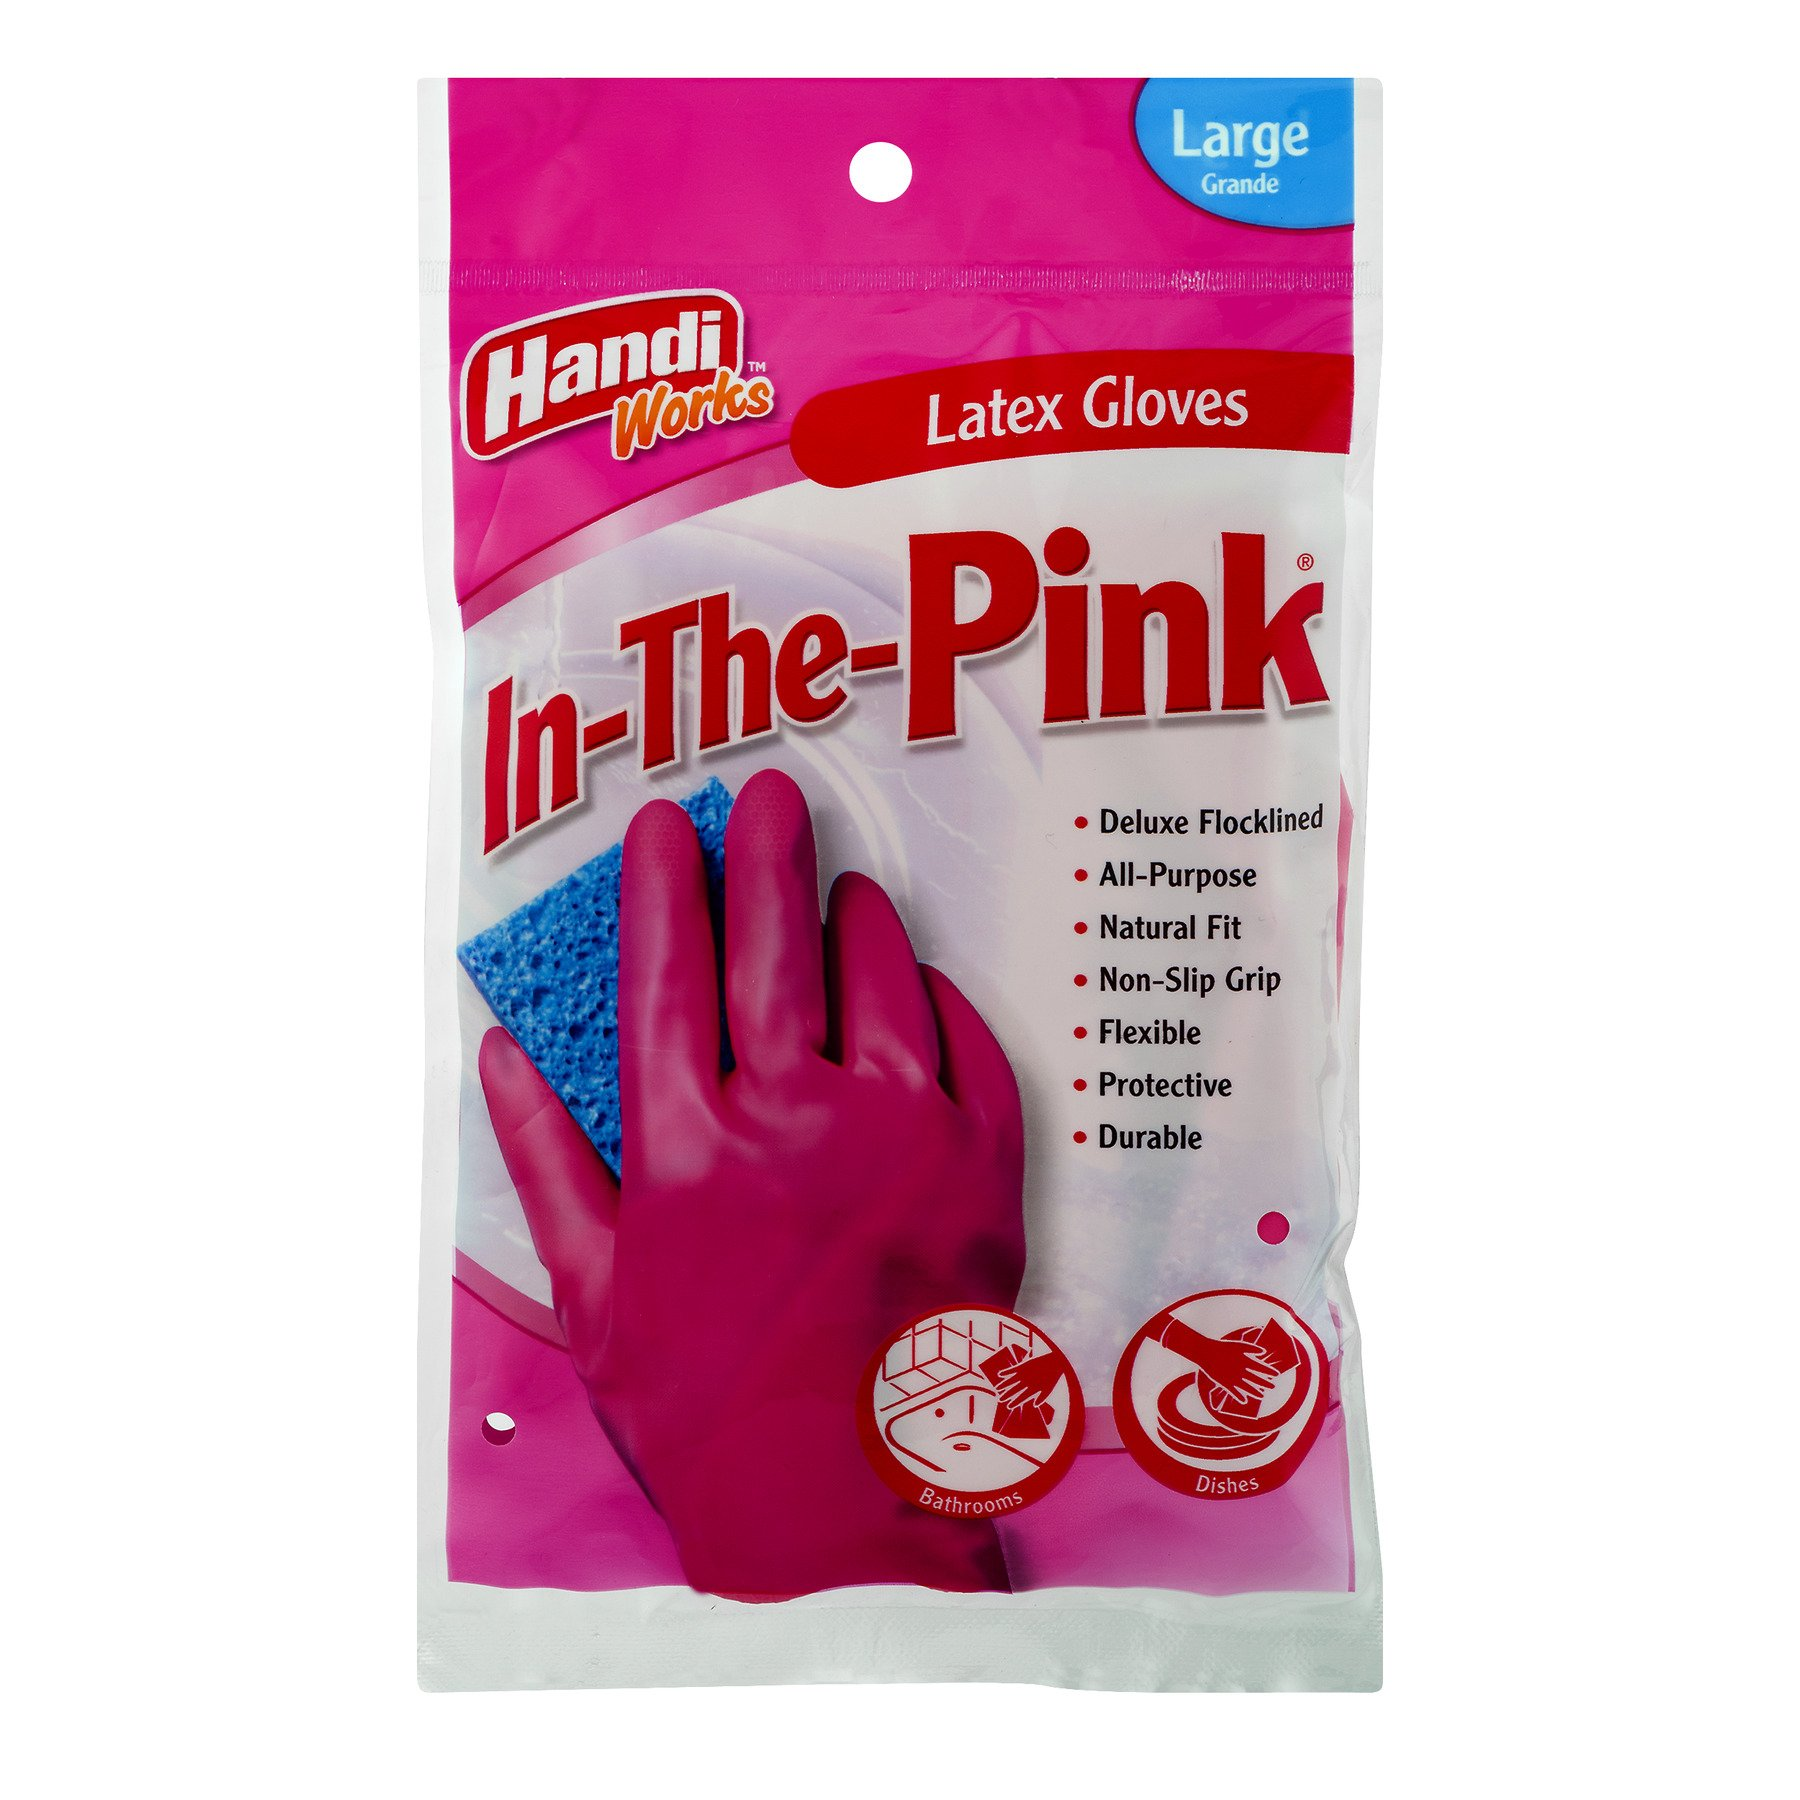 Handi-Works In The Pink, 12 Pairs of LARGE Pink Latex Household Gloves, 00504 by Glove Specialties